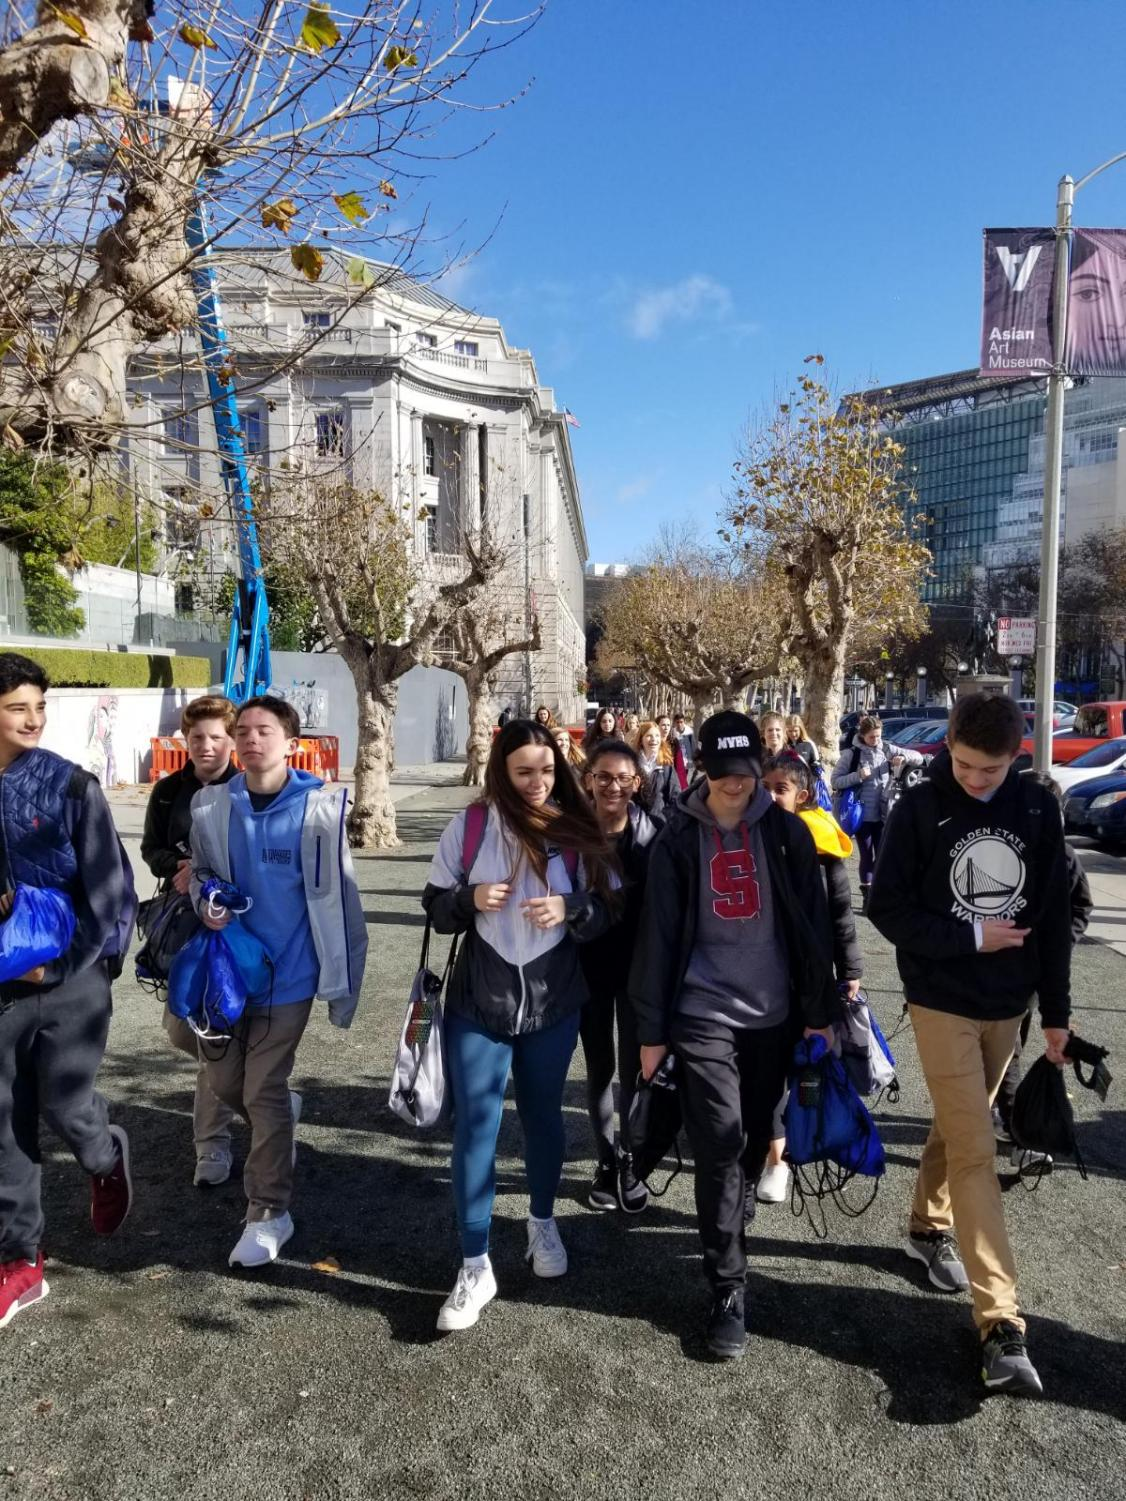 MV freshmen walking around in S.F. handing out bags to the homeless.